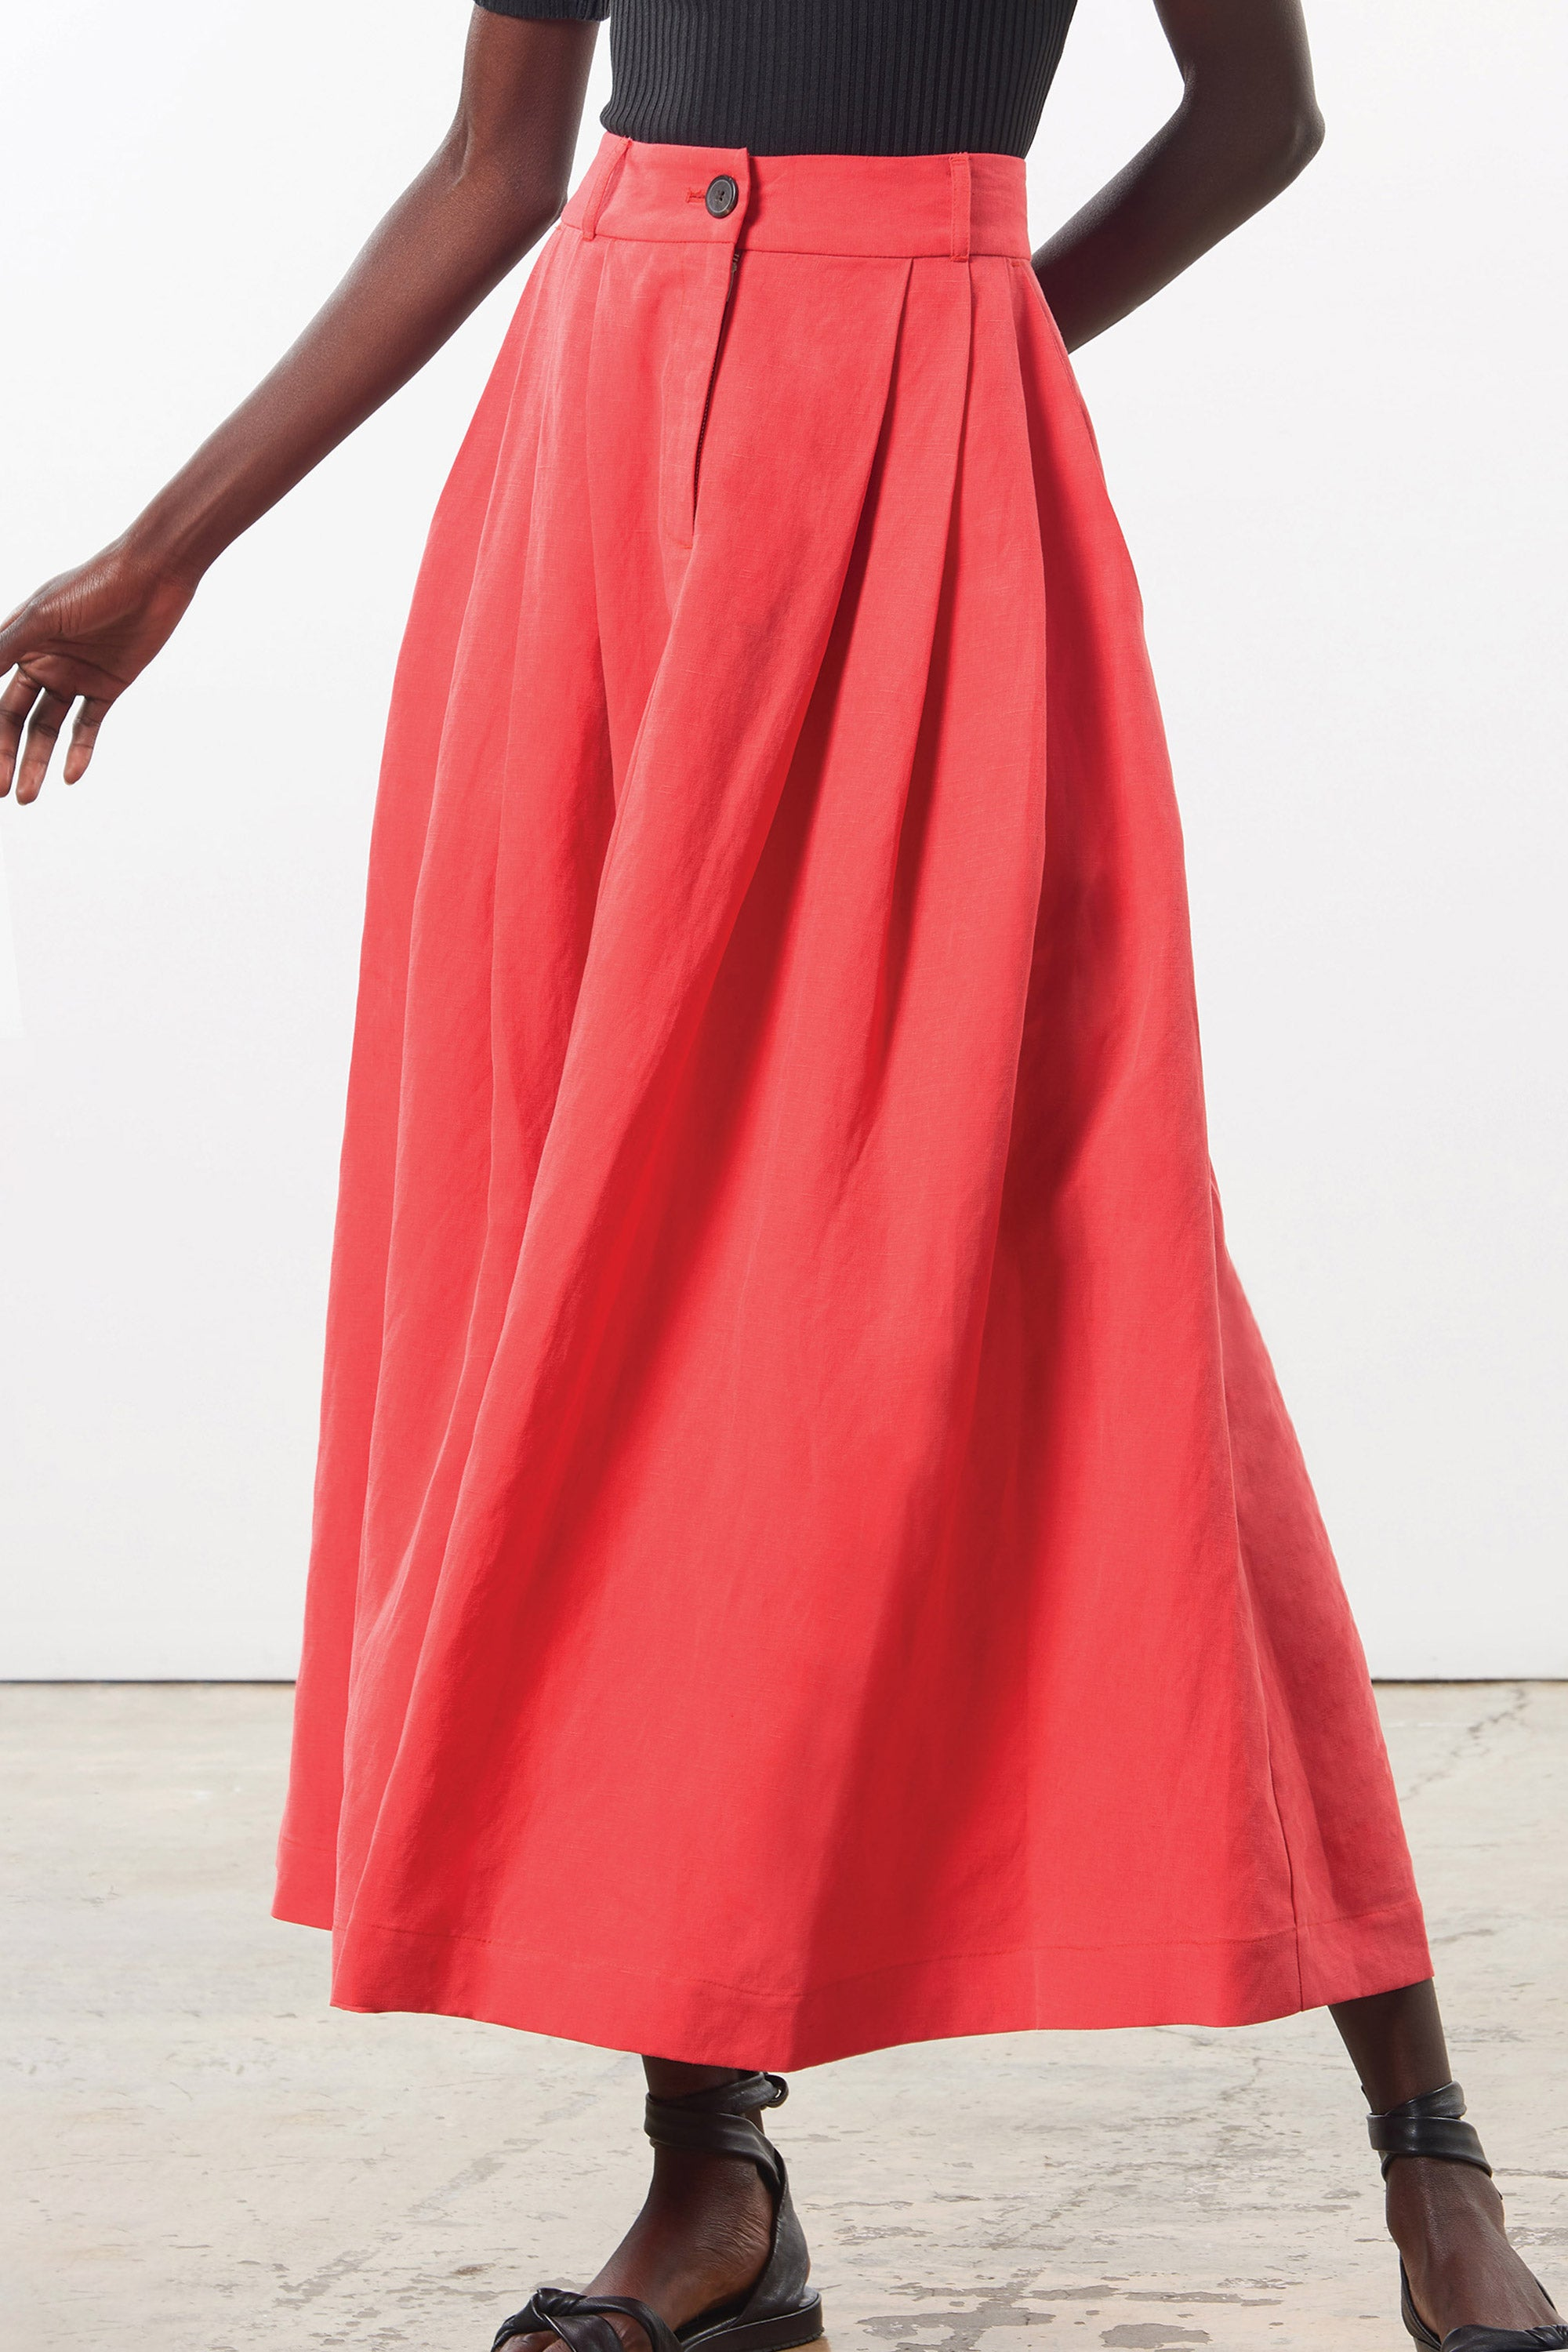 Mara Hoffman Red Tulay Skirt in tencel lyocell and linen (movement detail)